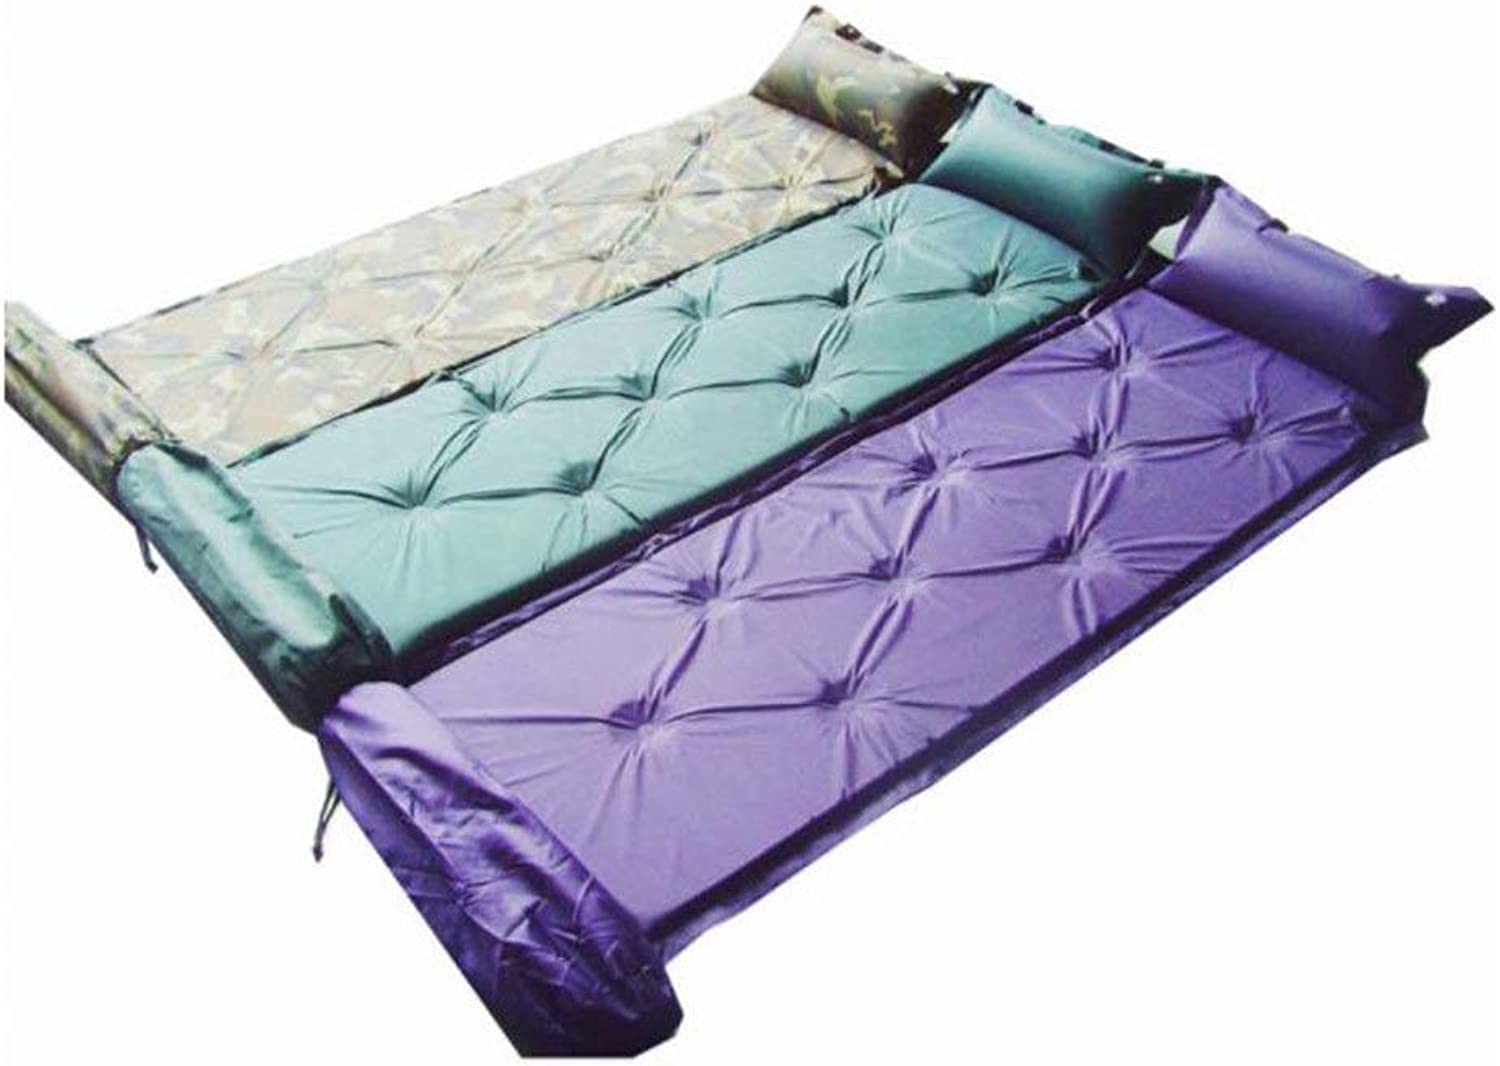 Self-Inflating Compact Foam Sleeping Bag Mat Splicing with Attached Pillow Waterproof Lightweight Inflatable Outdoor Air Cell Mattress Single Camping Pad,for Outdoor Sport and so on